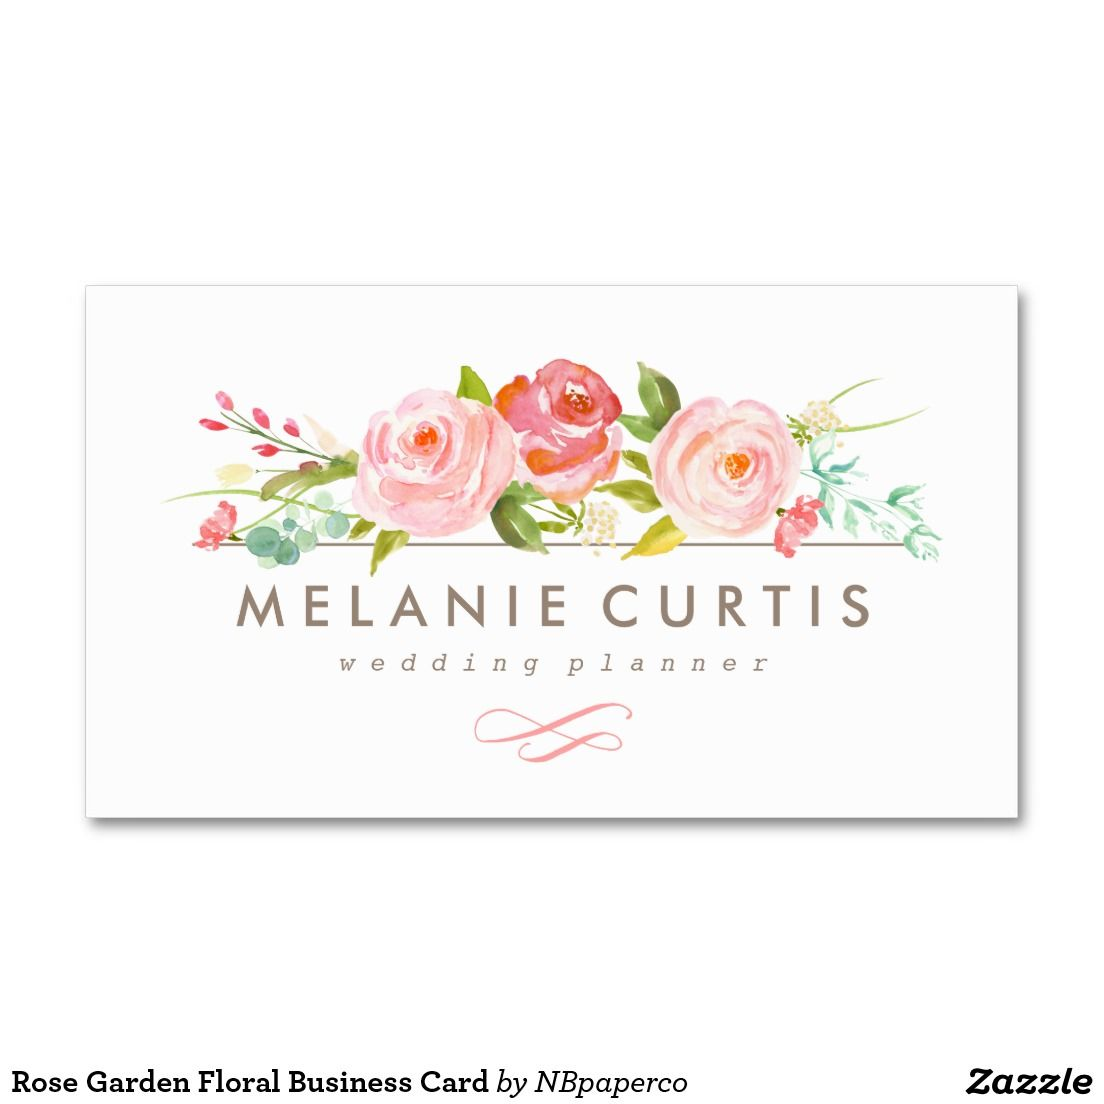 Rose Garden Floral Business Card | TARJETAS | Pinterest